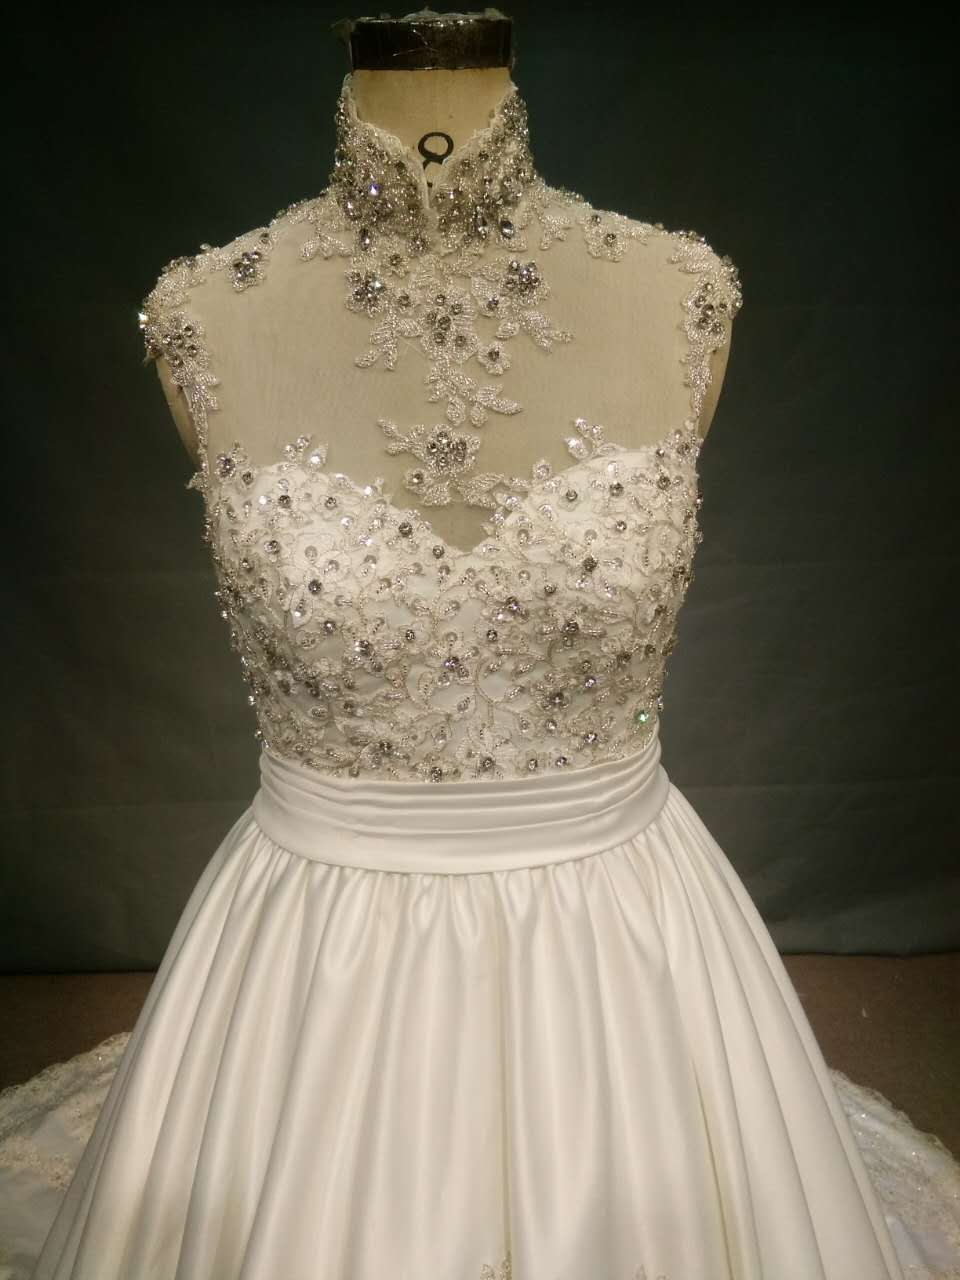 Sleeveless a-line wedding gown with Bling from Darius Customs